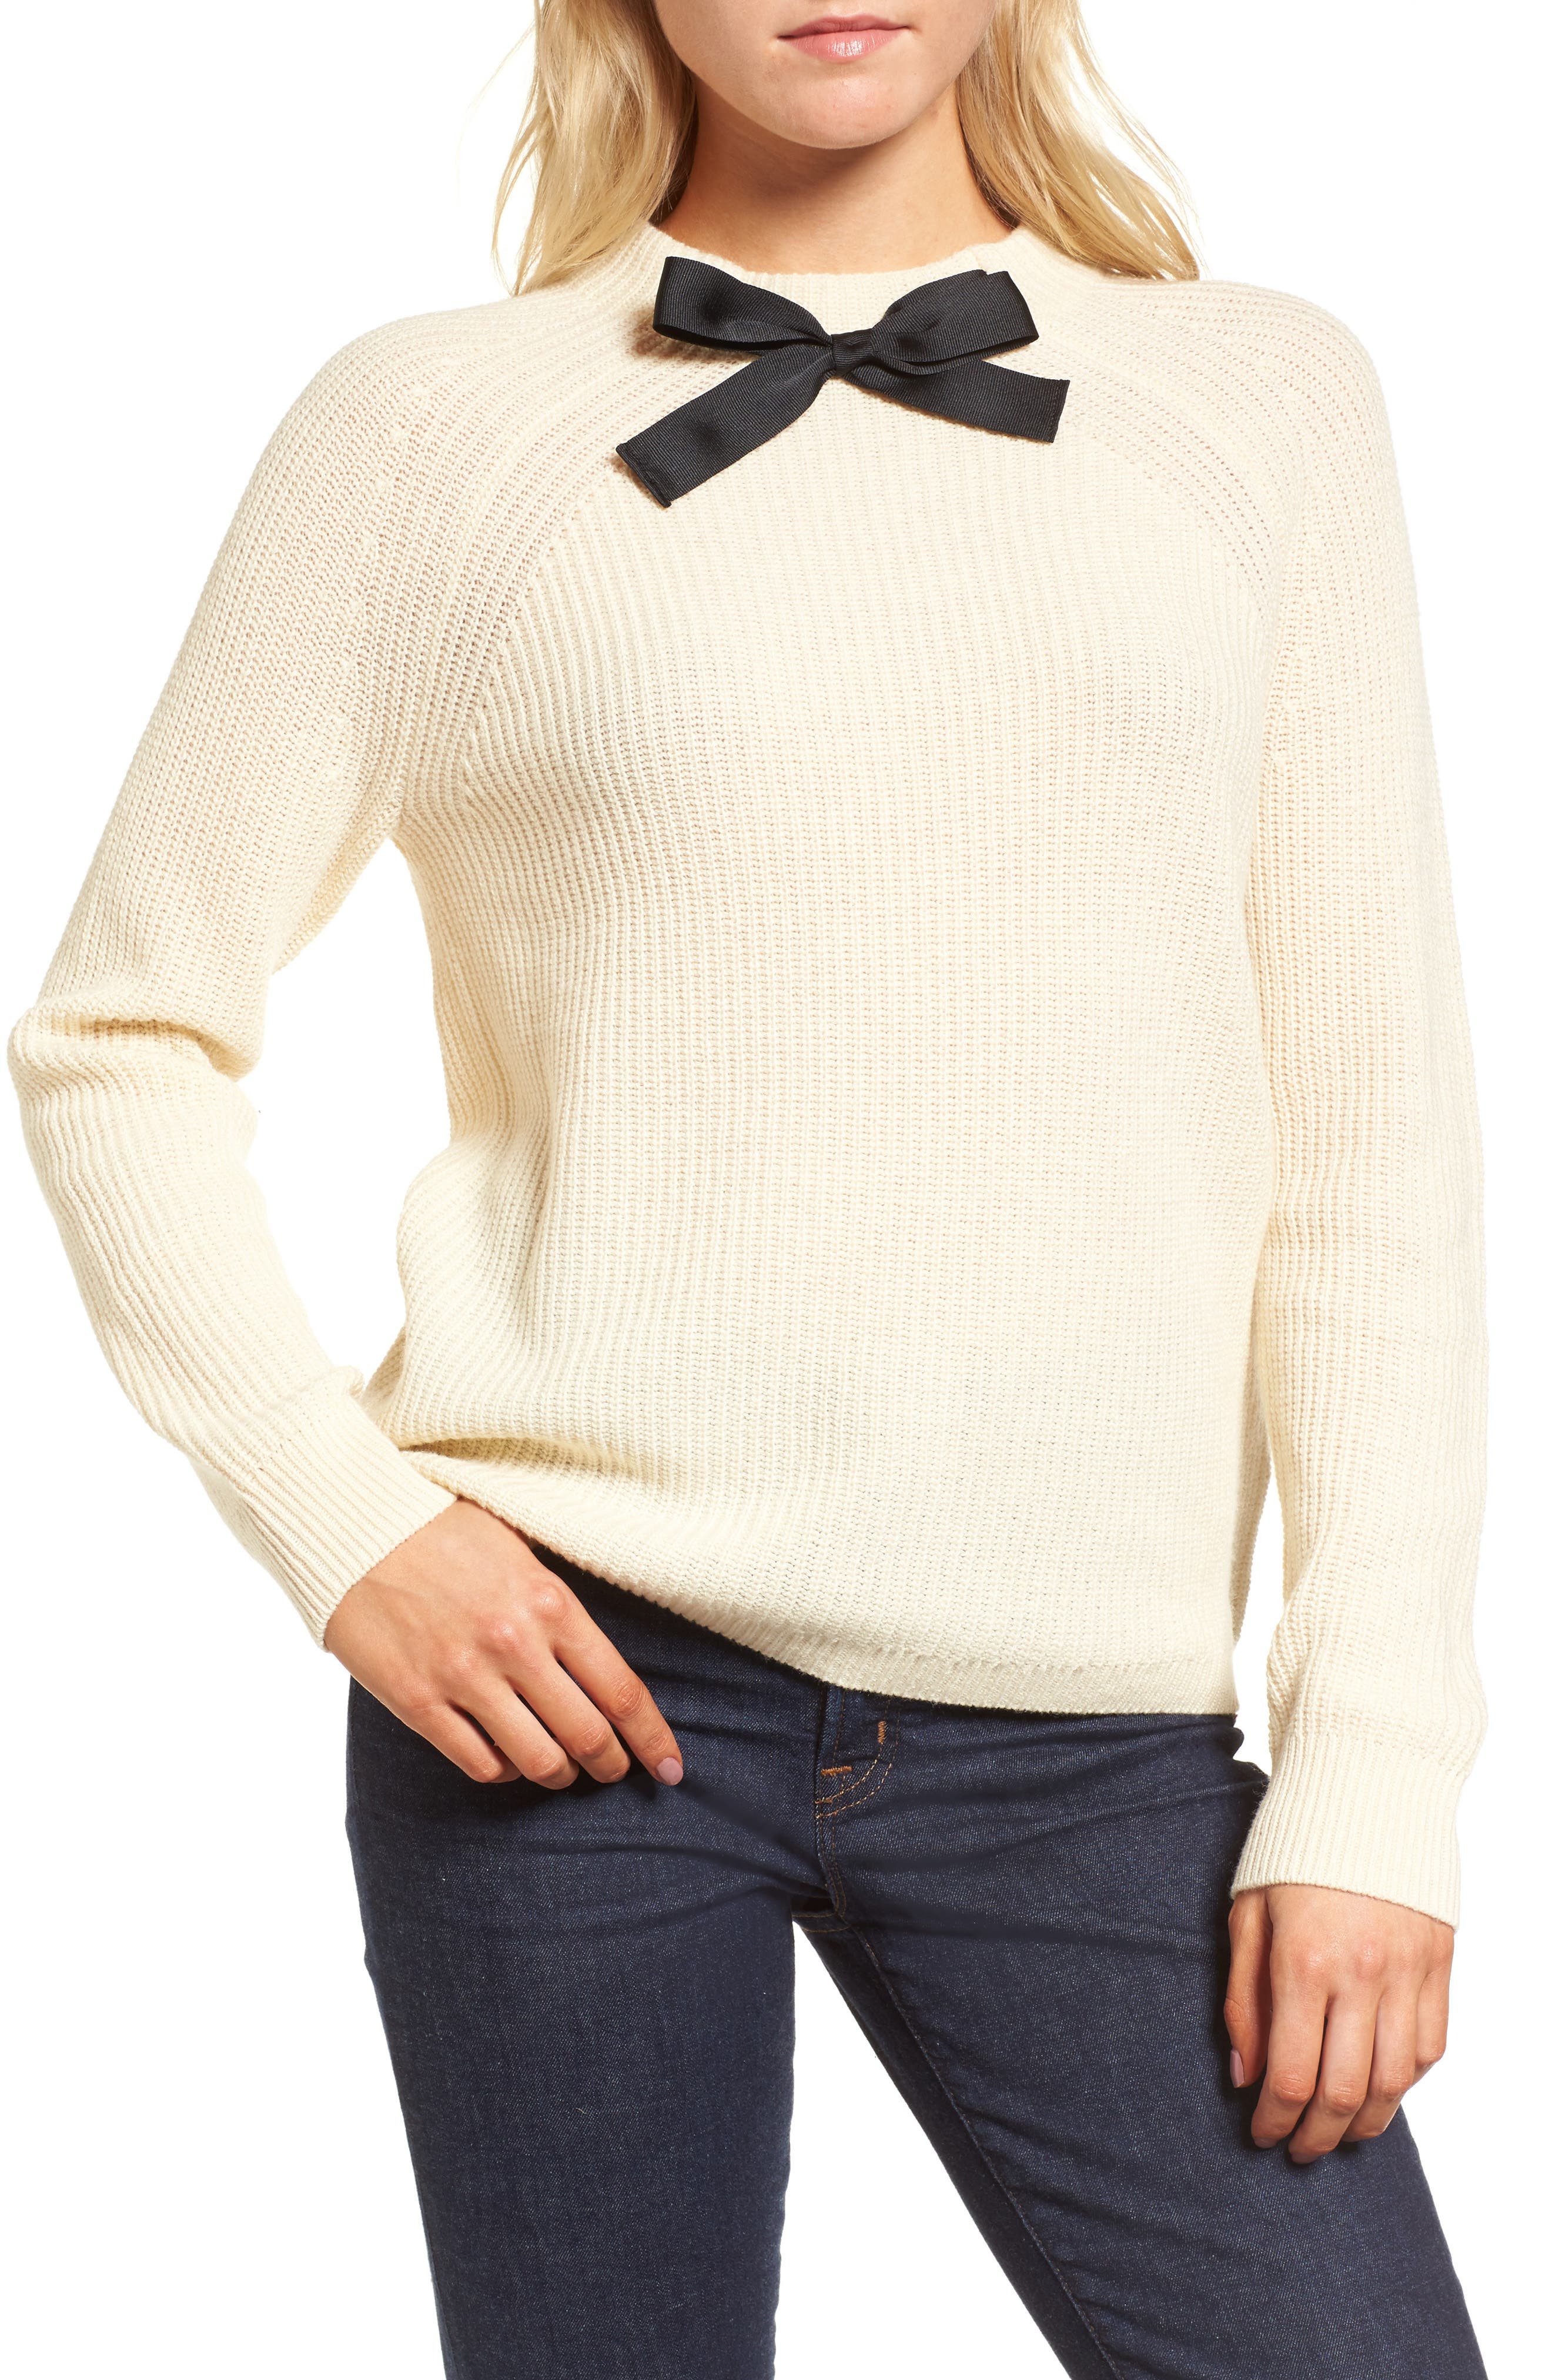 Gayle Tie Neck Sweater,                             Main thumbnail 2, color,